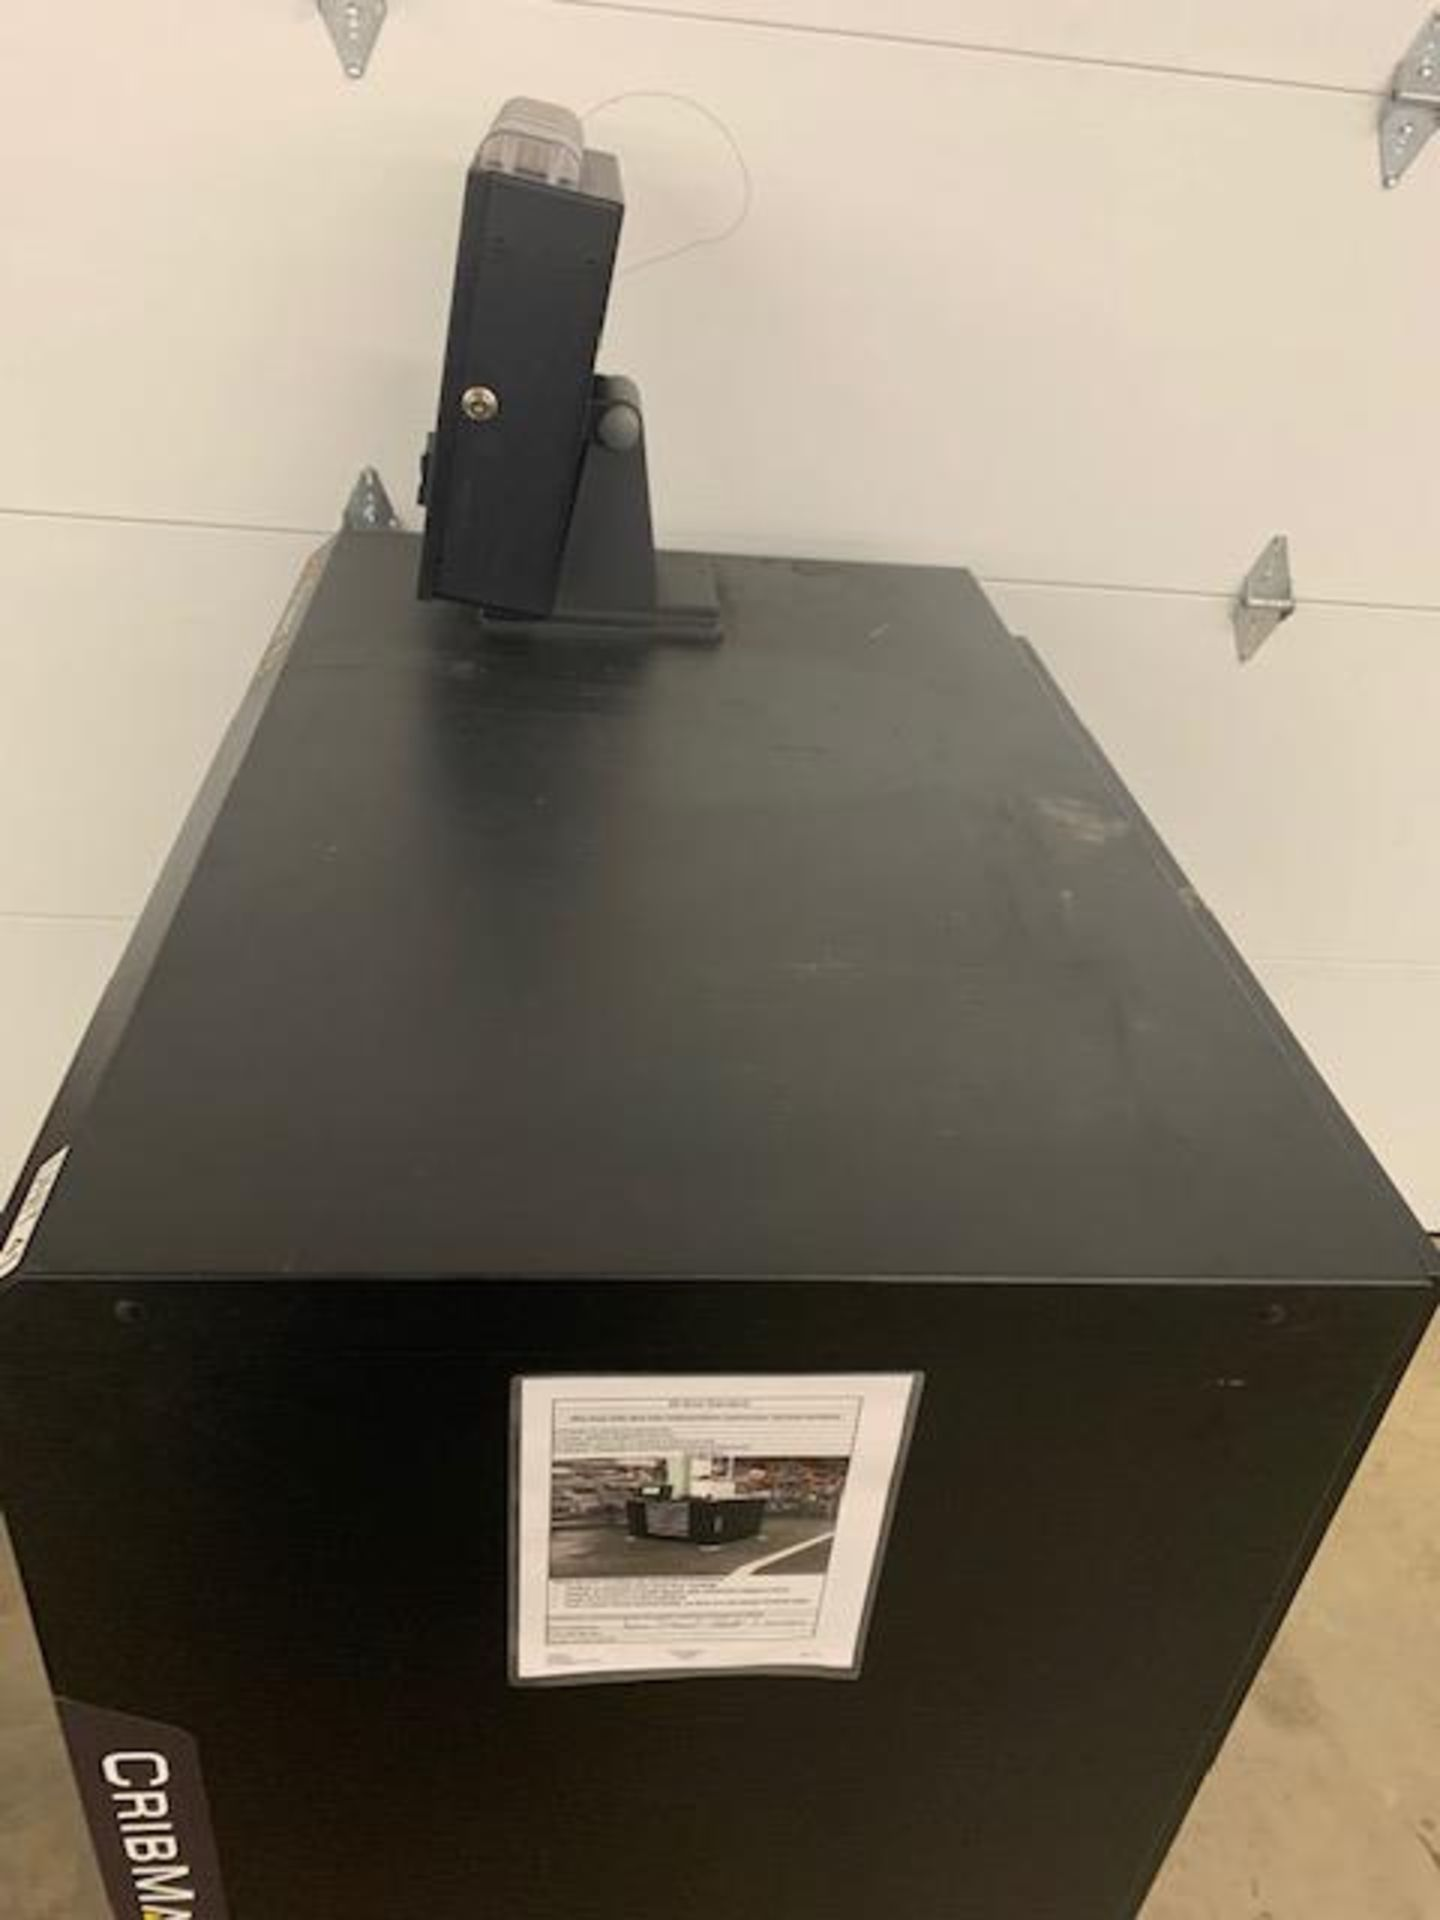 Cribmaster AccuDrawer - Image 8 of 8